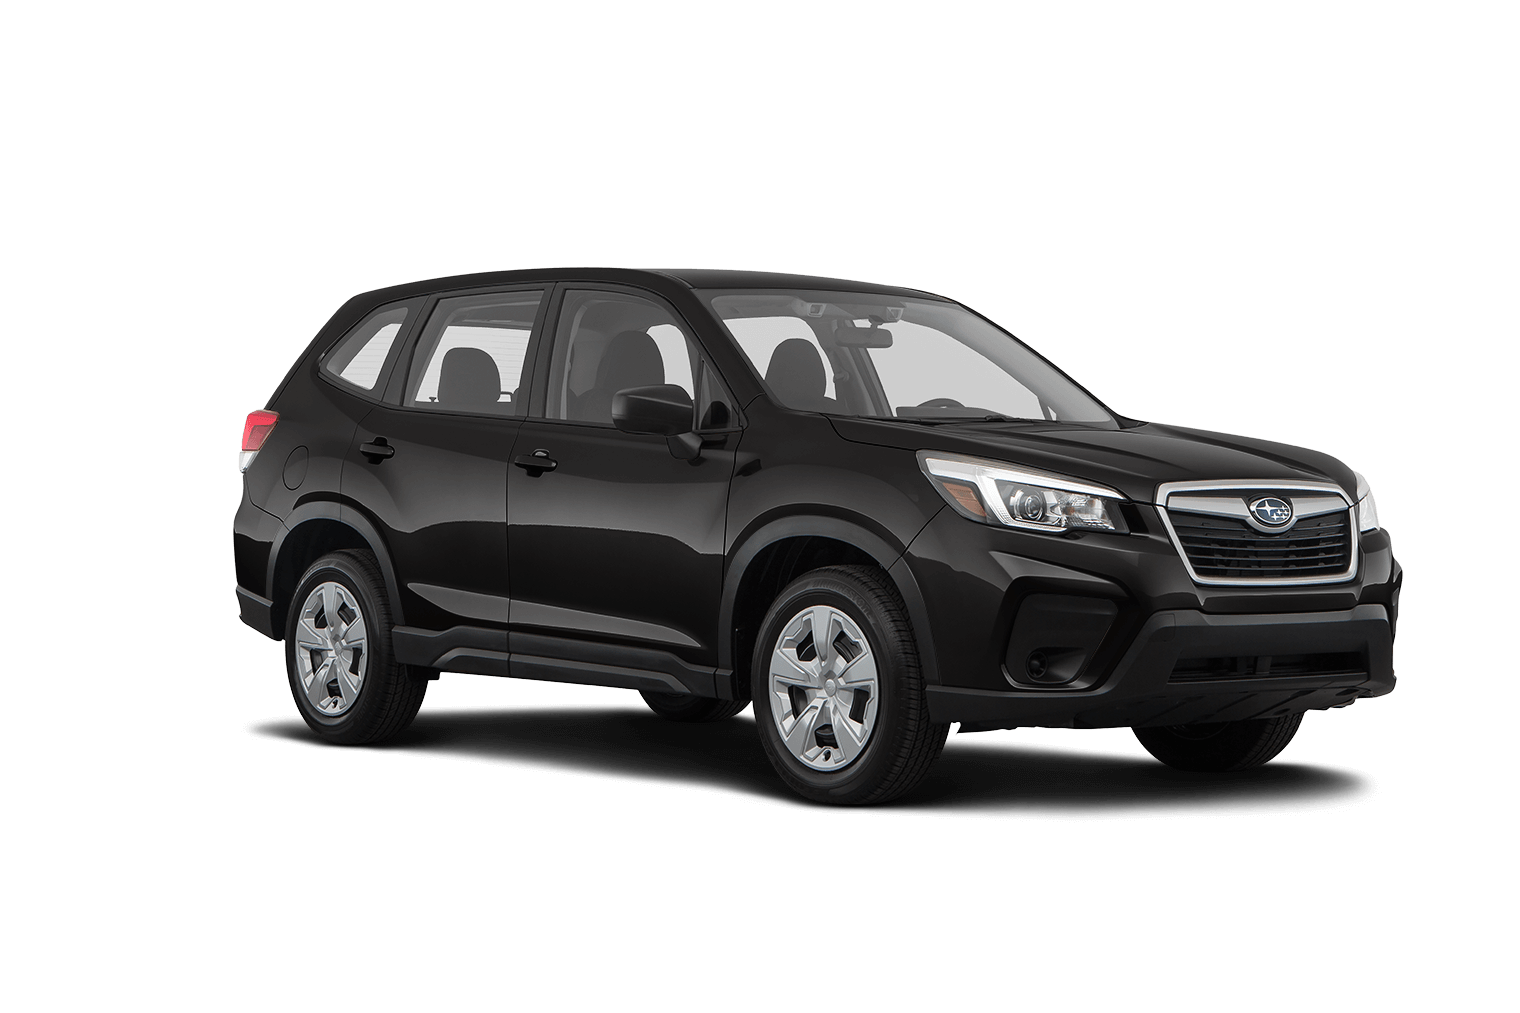 Subaru Forester 2.0i-S EyeSight SUV/Crossover 2019